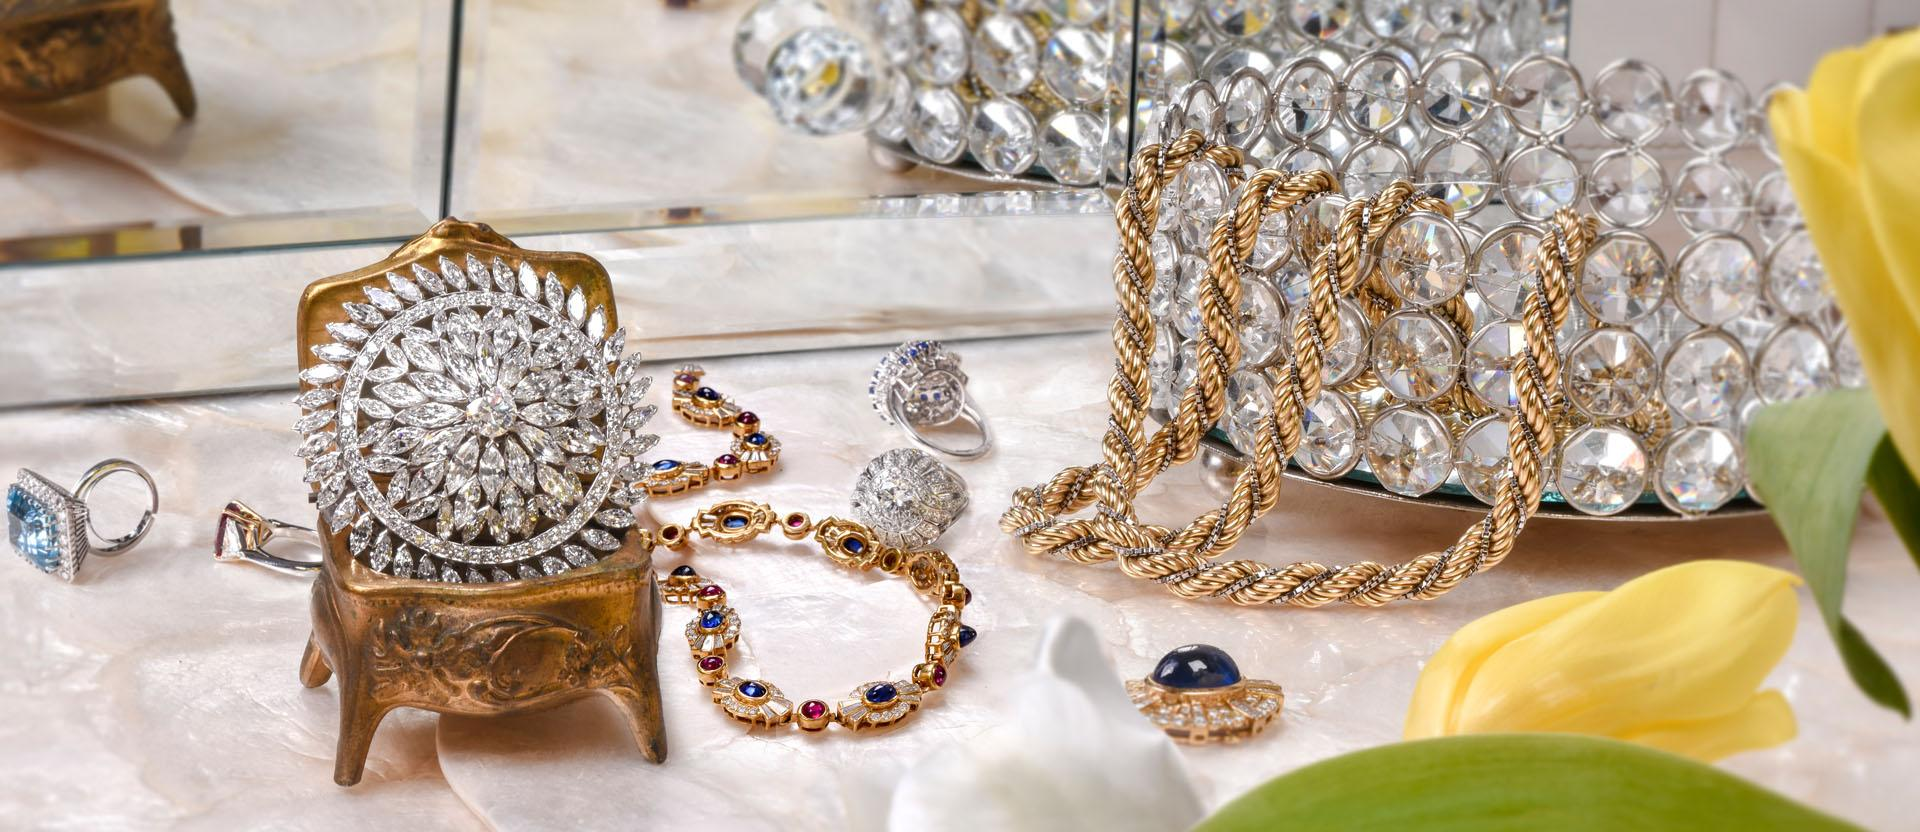 How to Combine Your Vintage Jewelry with Your Wardrobe